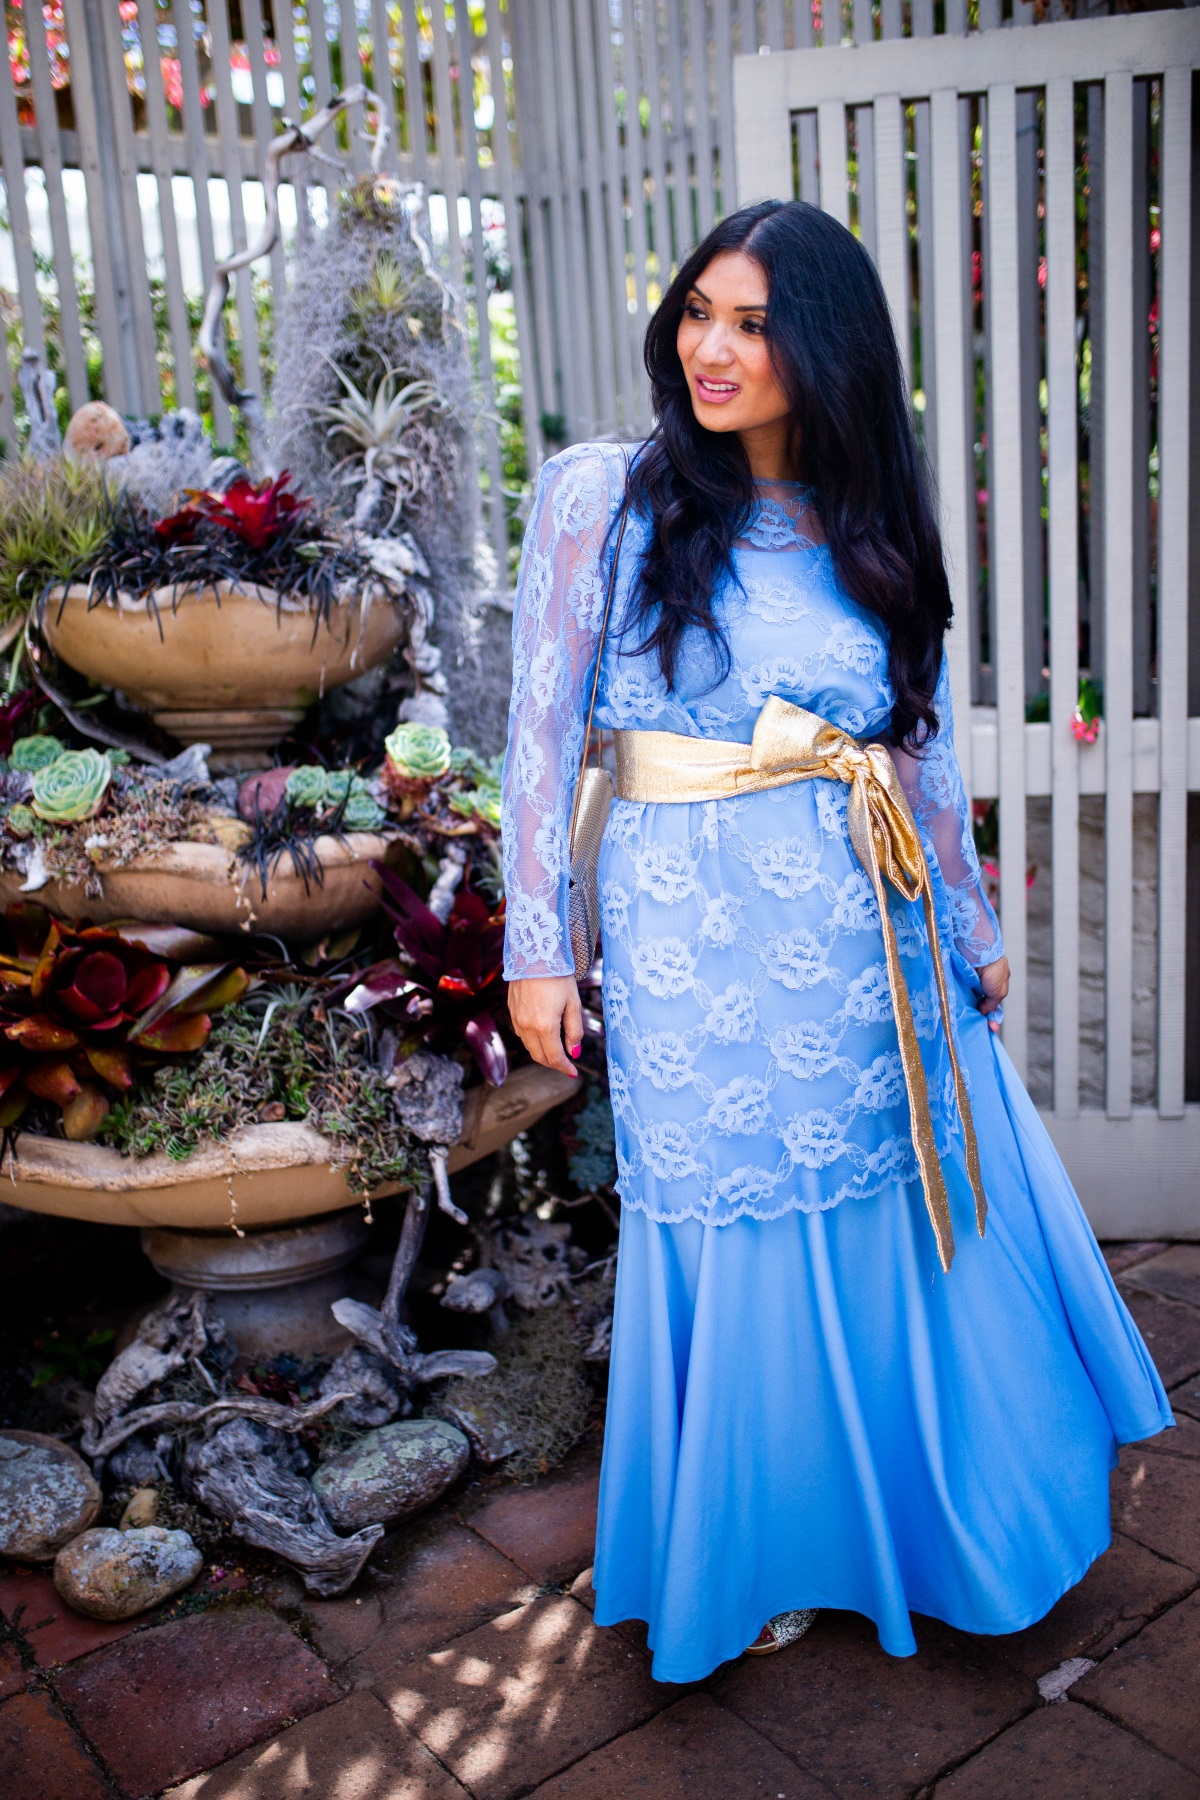 3 Alternative Ways to Shop for Clothes   Baby Blue Vintage Lace Dress   Debbie Savage Orange County Fashion Blogger of To Thine Own Style Be True